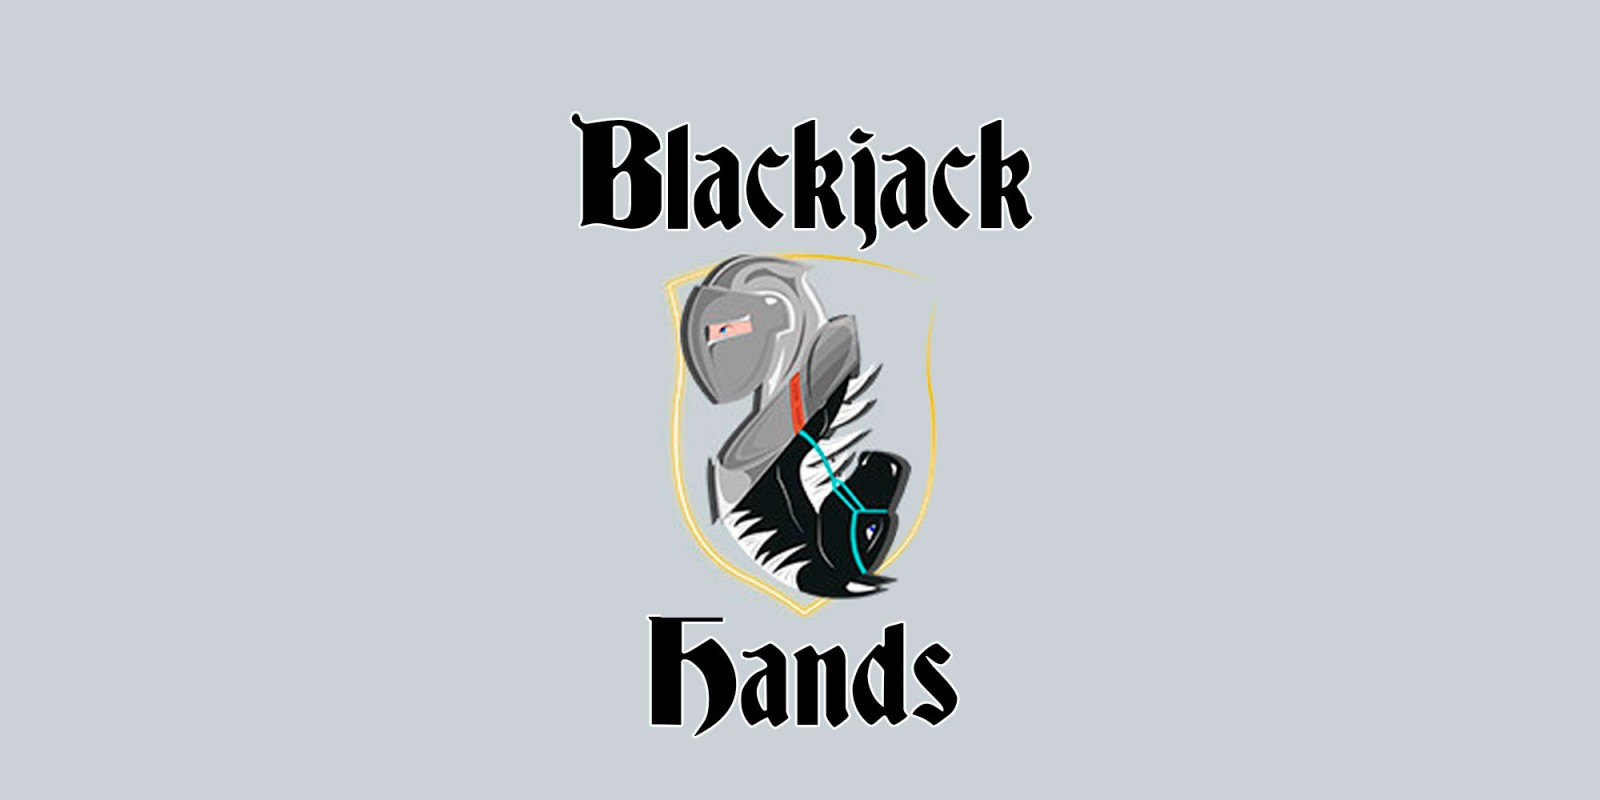 Blackjack Hands